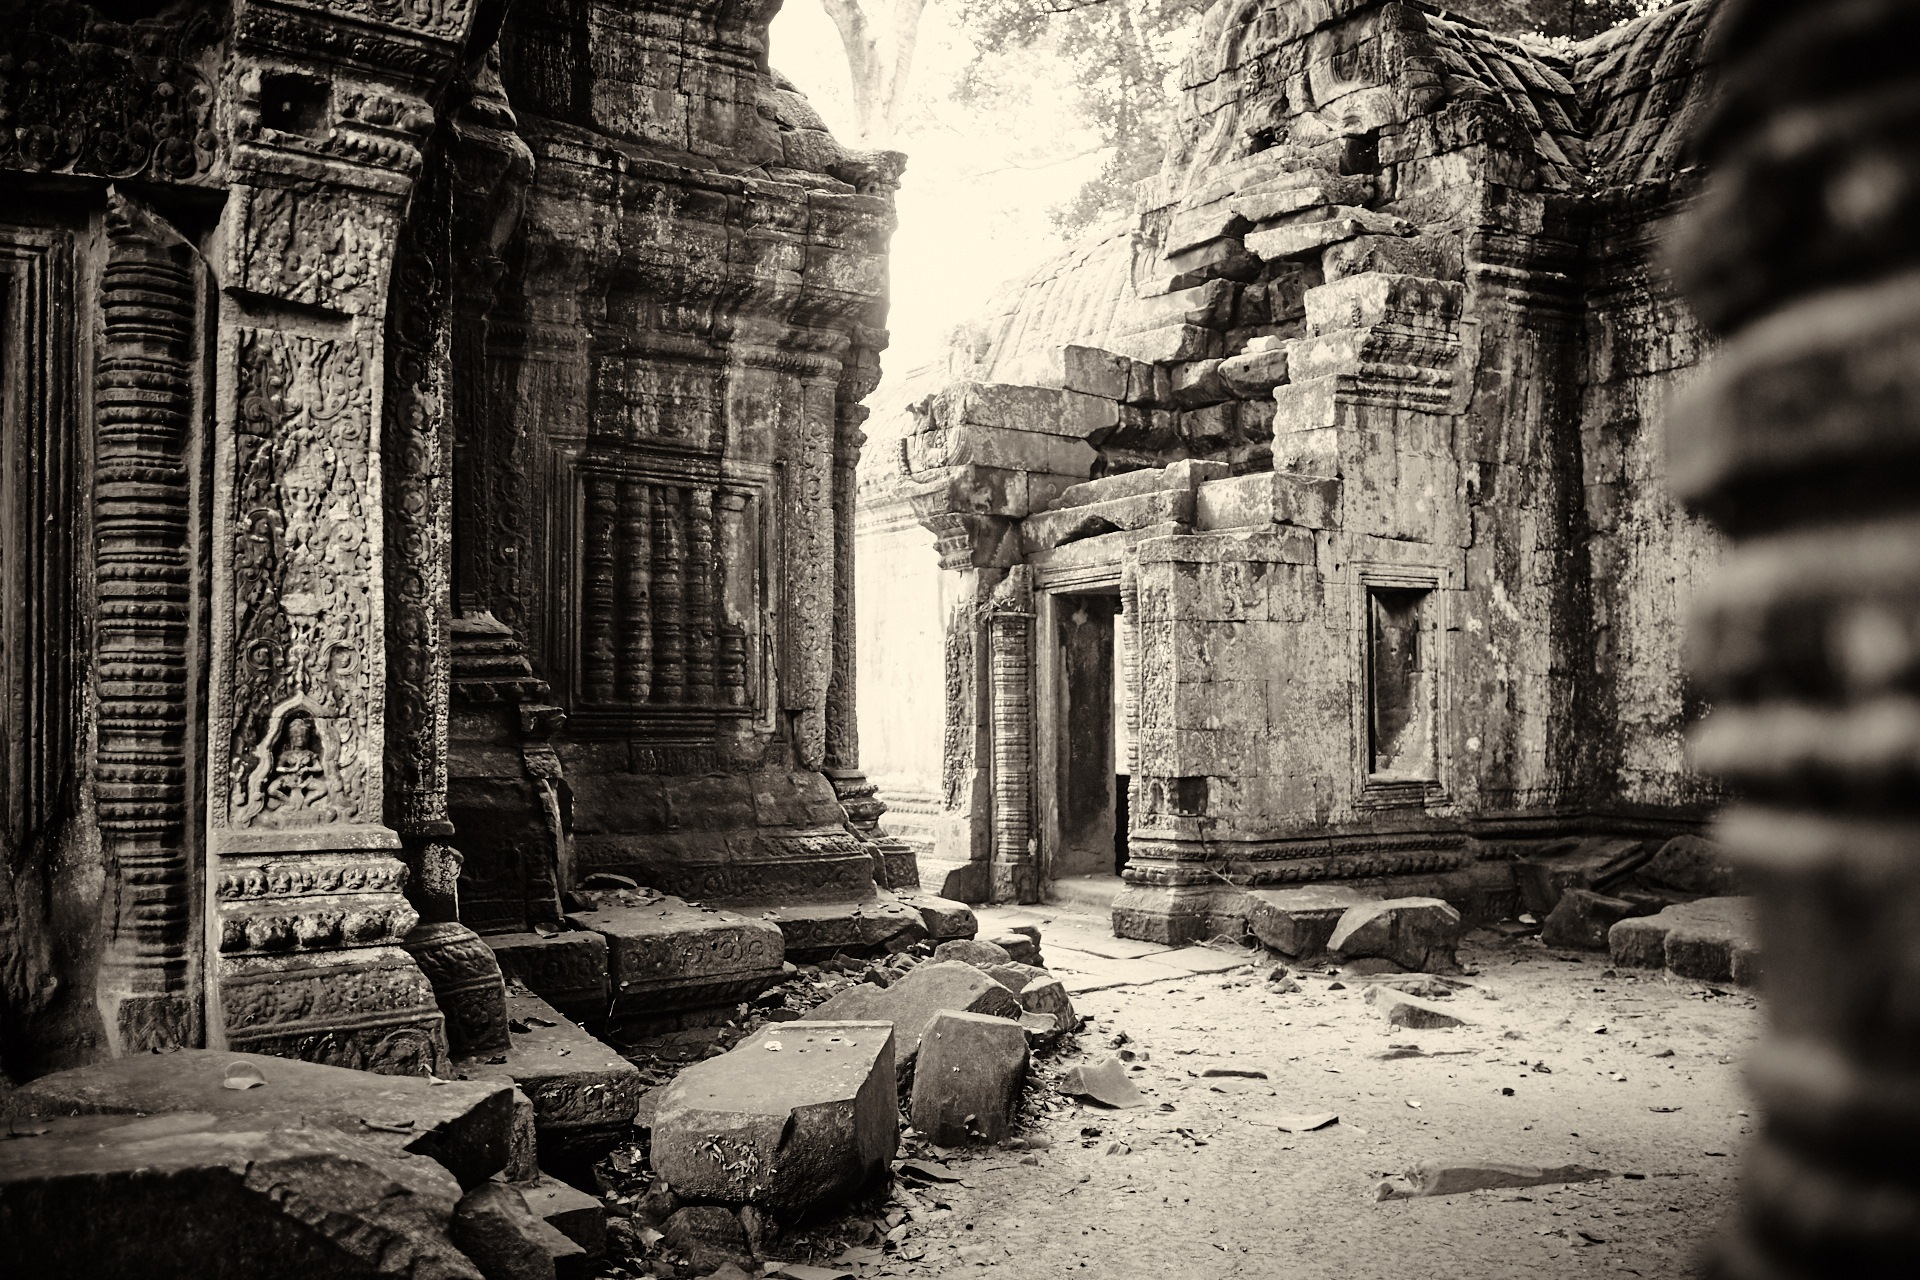 The Treasures of Angkor